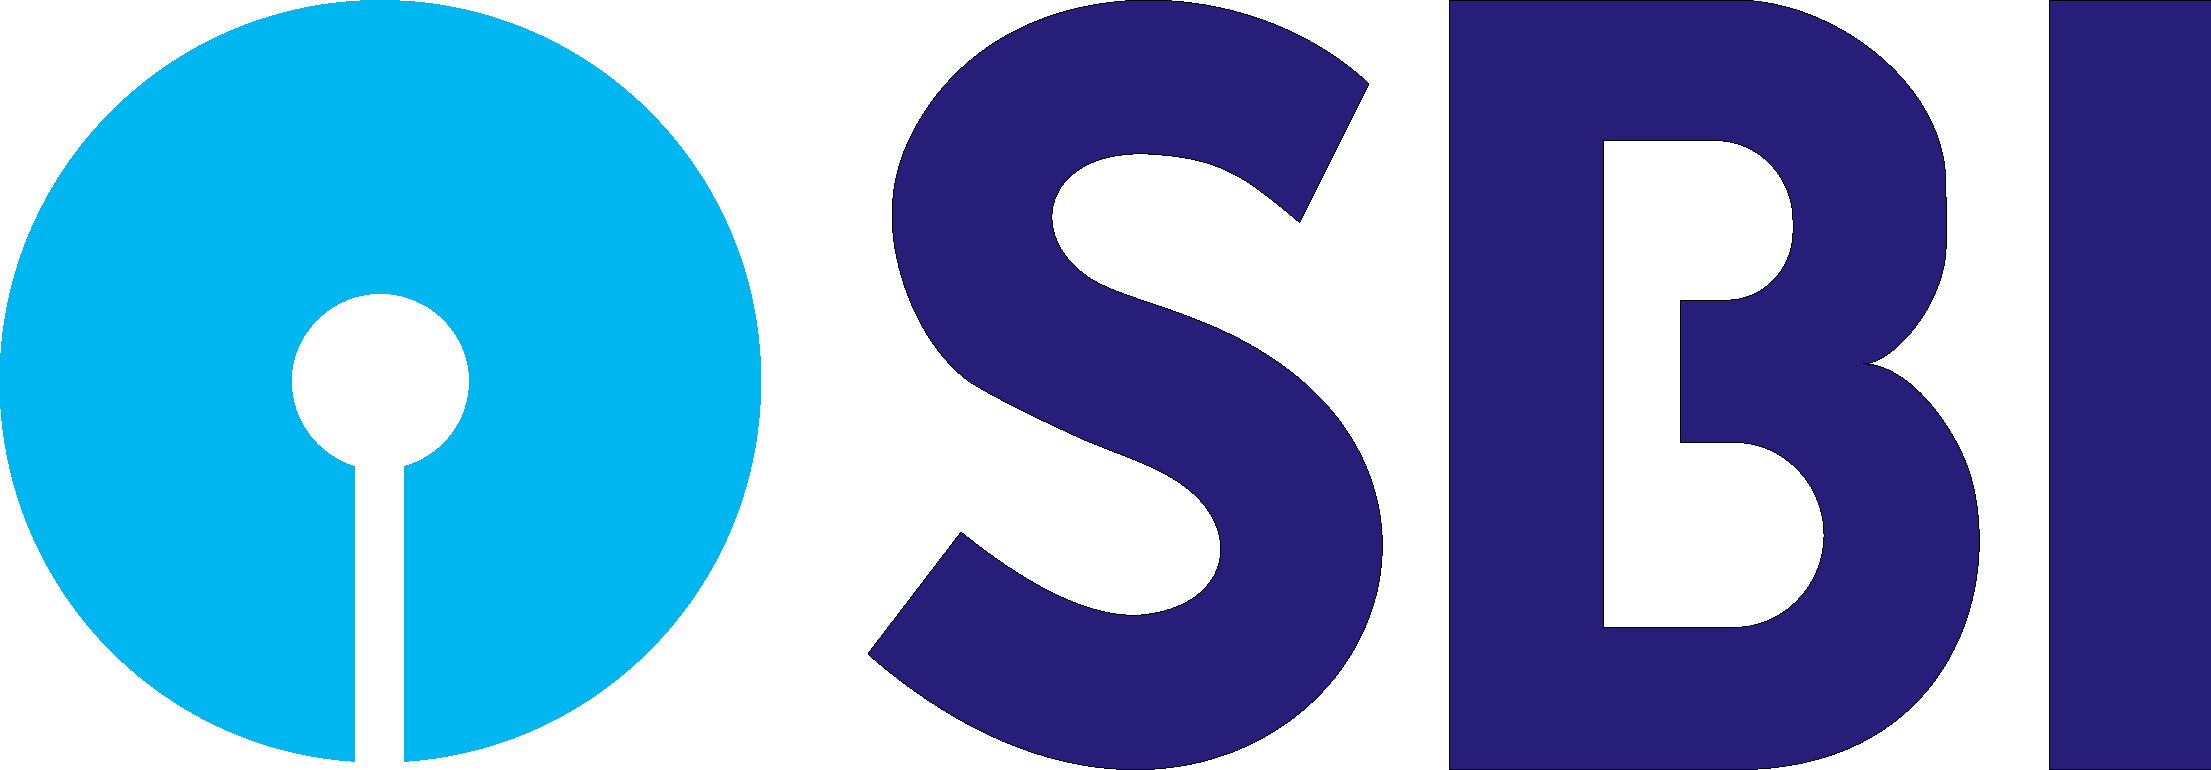 sbi logo state bank india group vector eps #33205